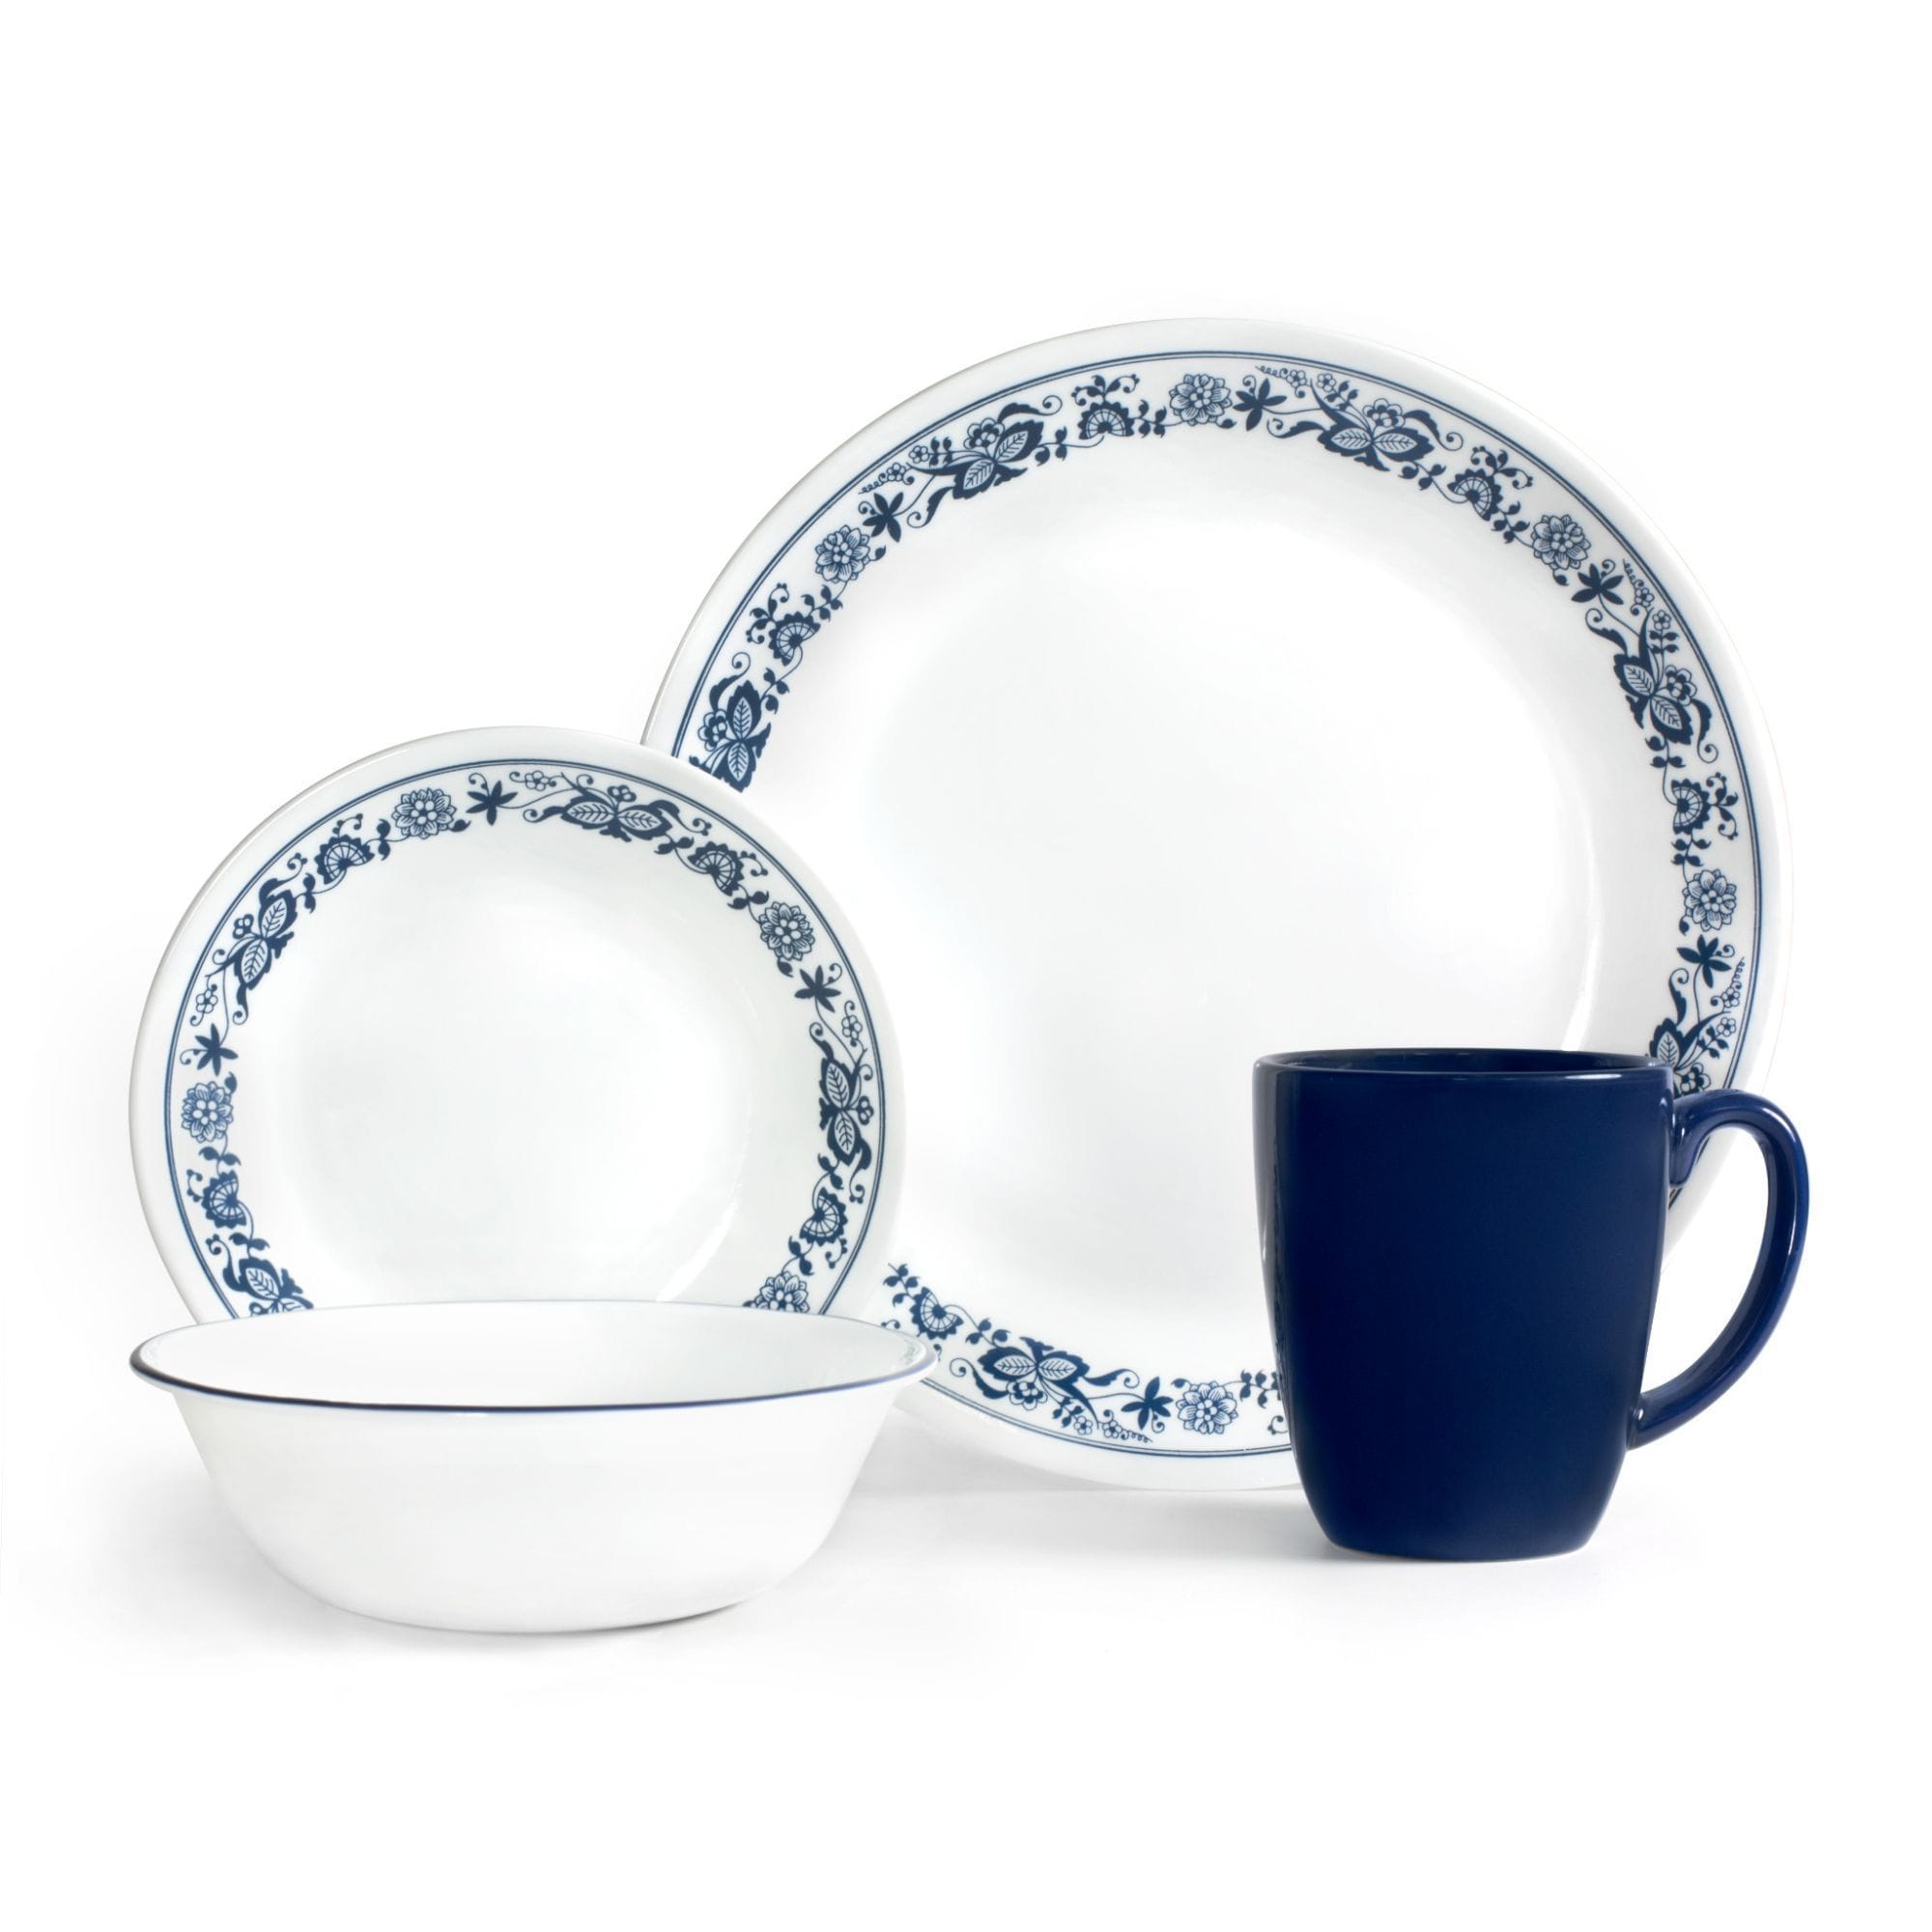 Corelle Old Town Blue salad plate